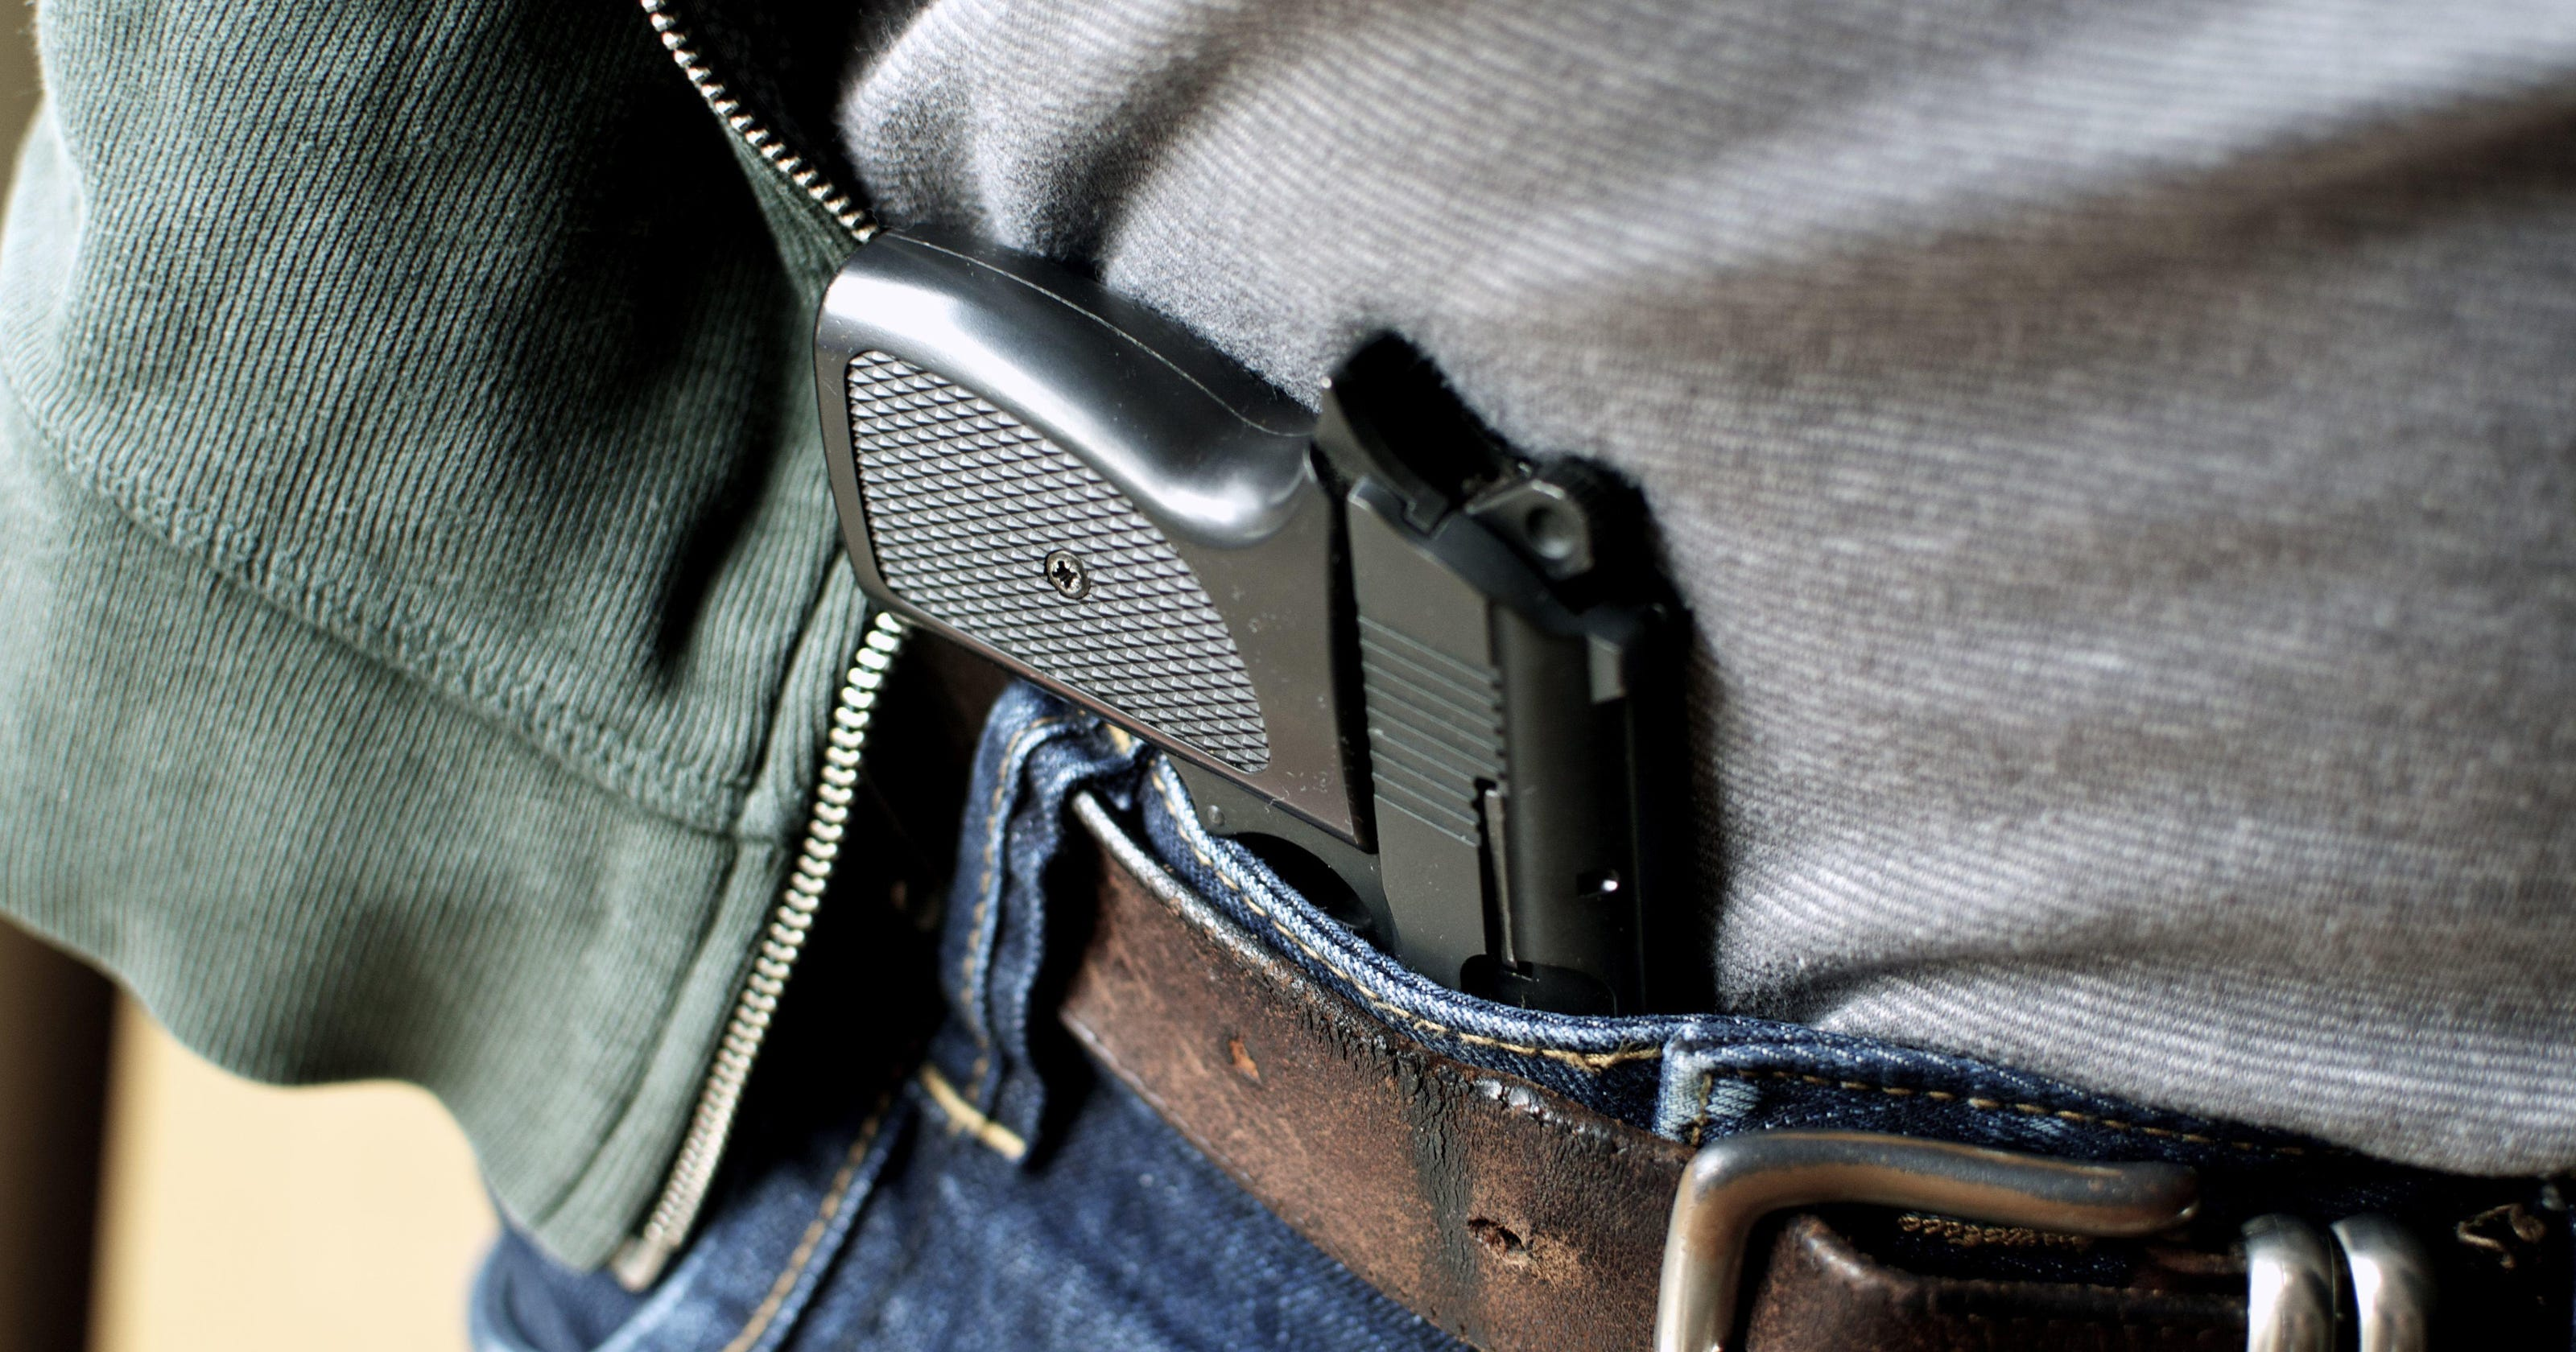 Office in Molino to begin accepting concealed carry apps, renewals